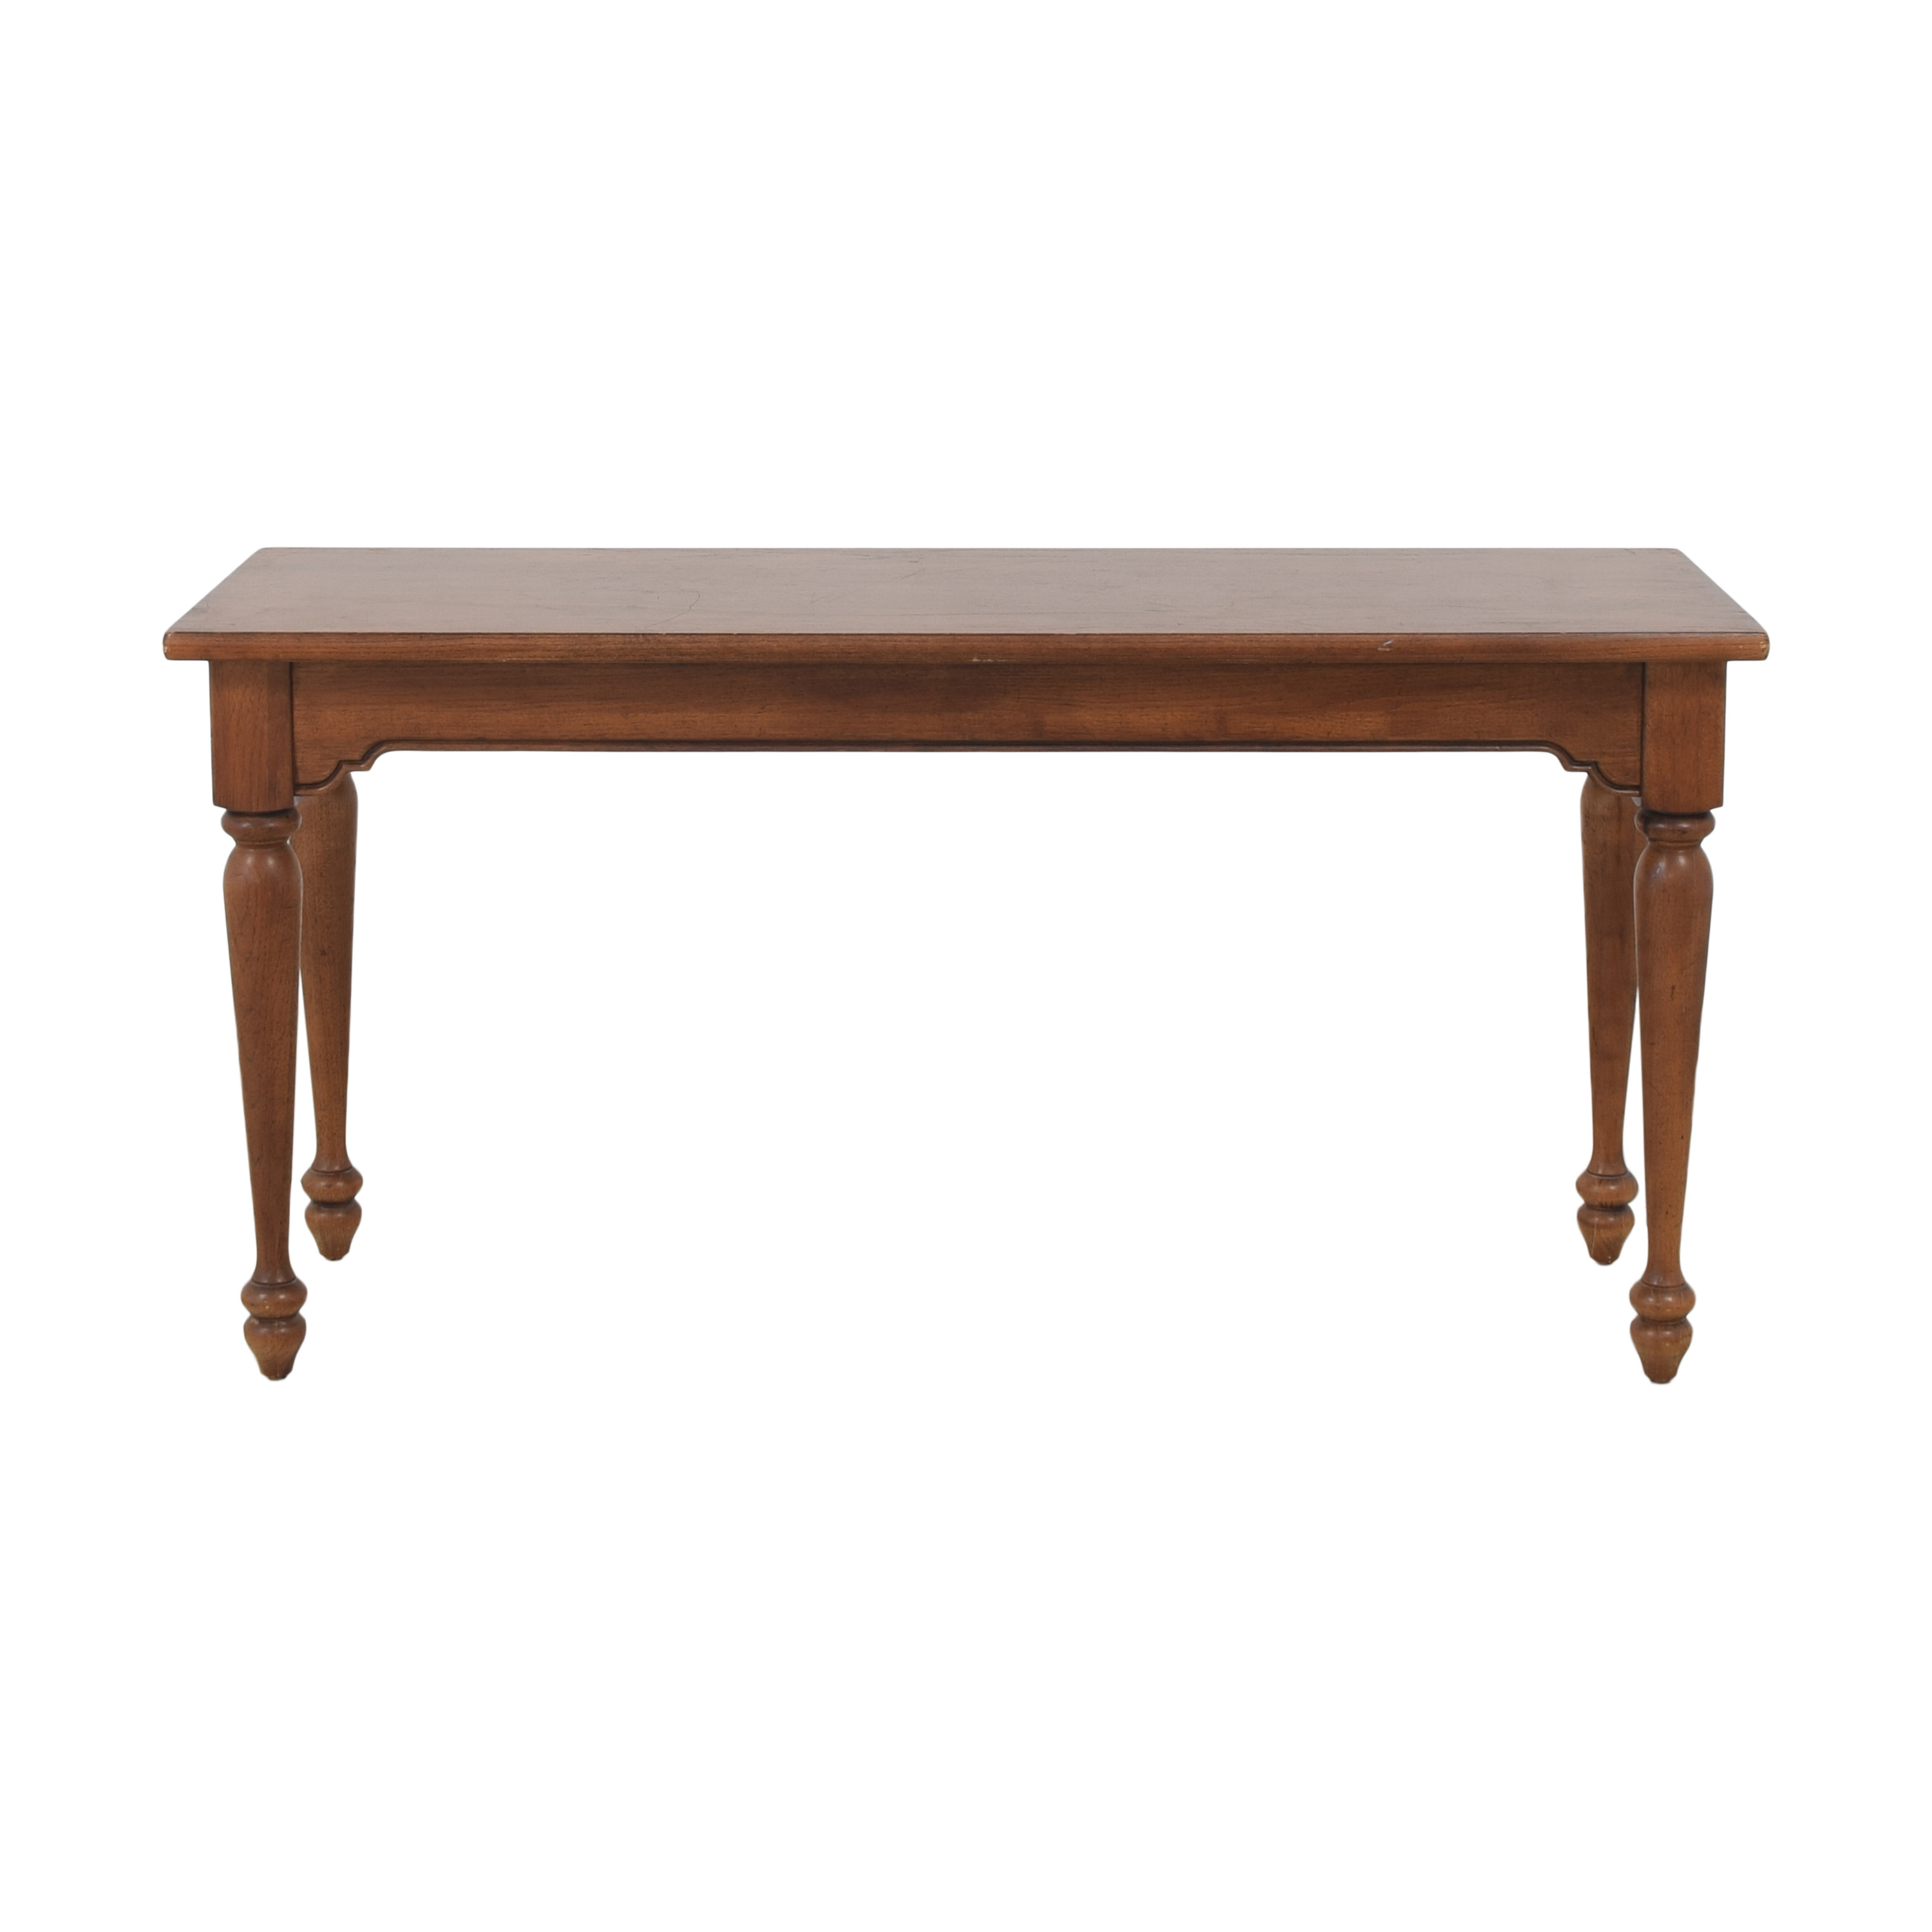 Thomasville Thomasville Sofa Table light brown